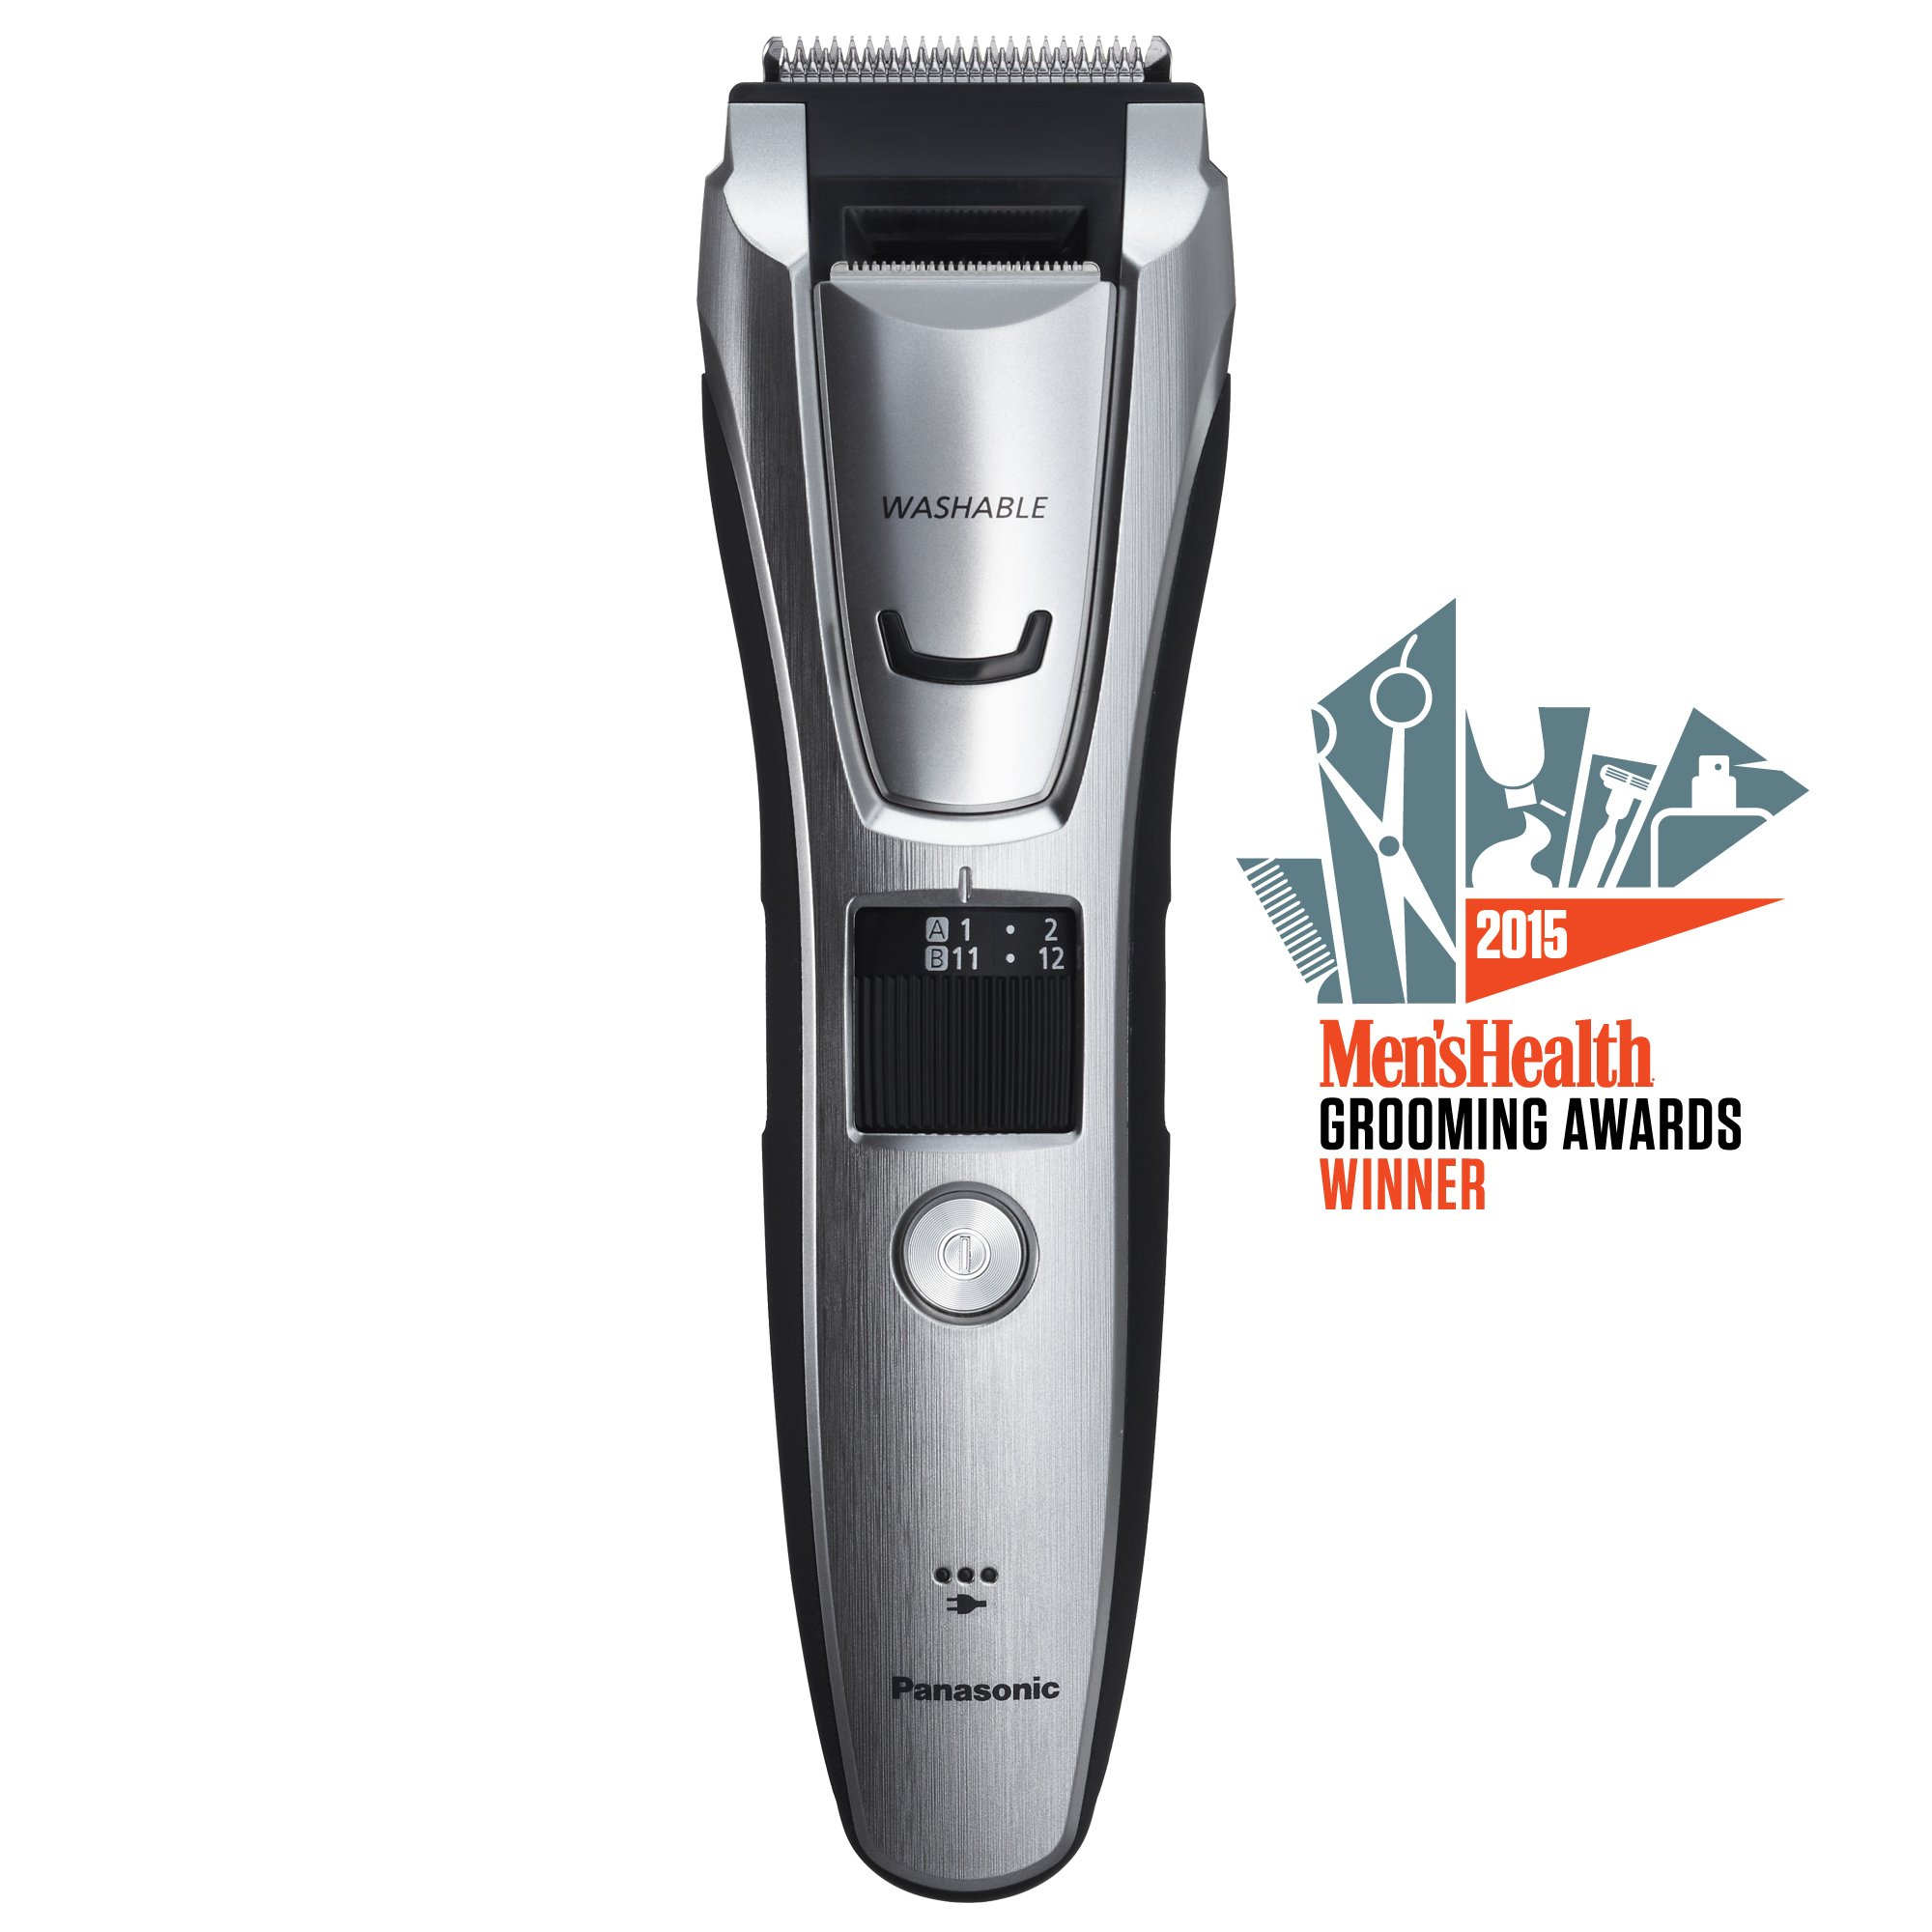 Panasonic ER-GB80-S Body and Beard Trimmer, Hair Clipper, Men's, Cordless/Corded Operation with 3 Comb Attachments and 39 Adjustable Trim Settings, Washable by Panasonic (Image #2)